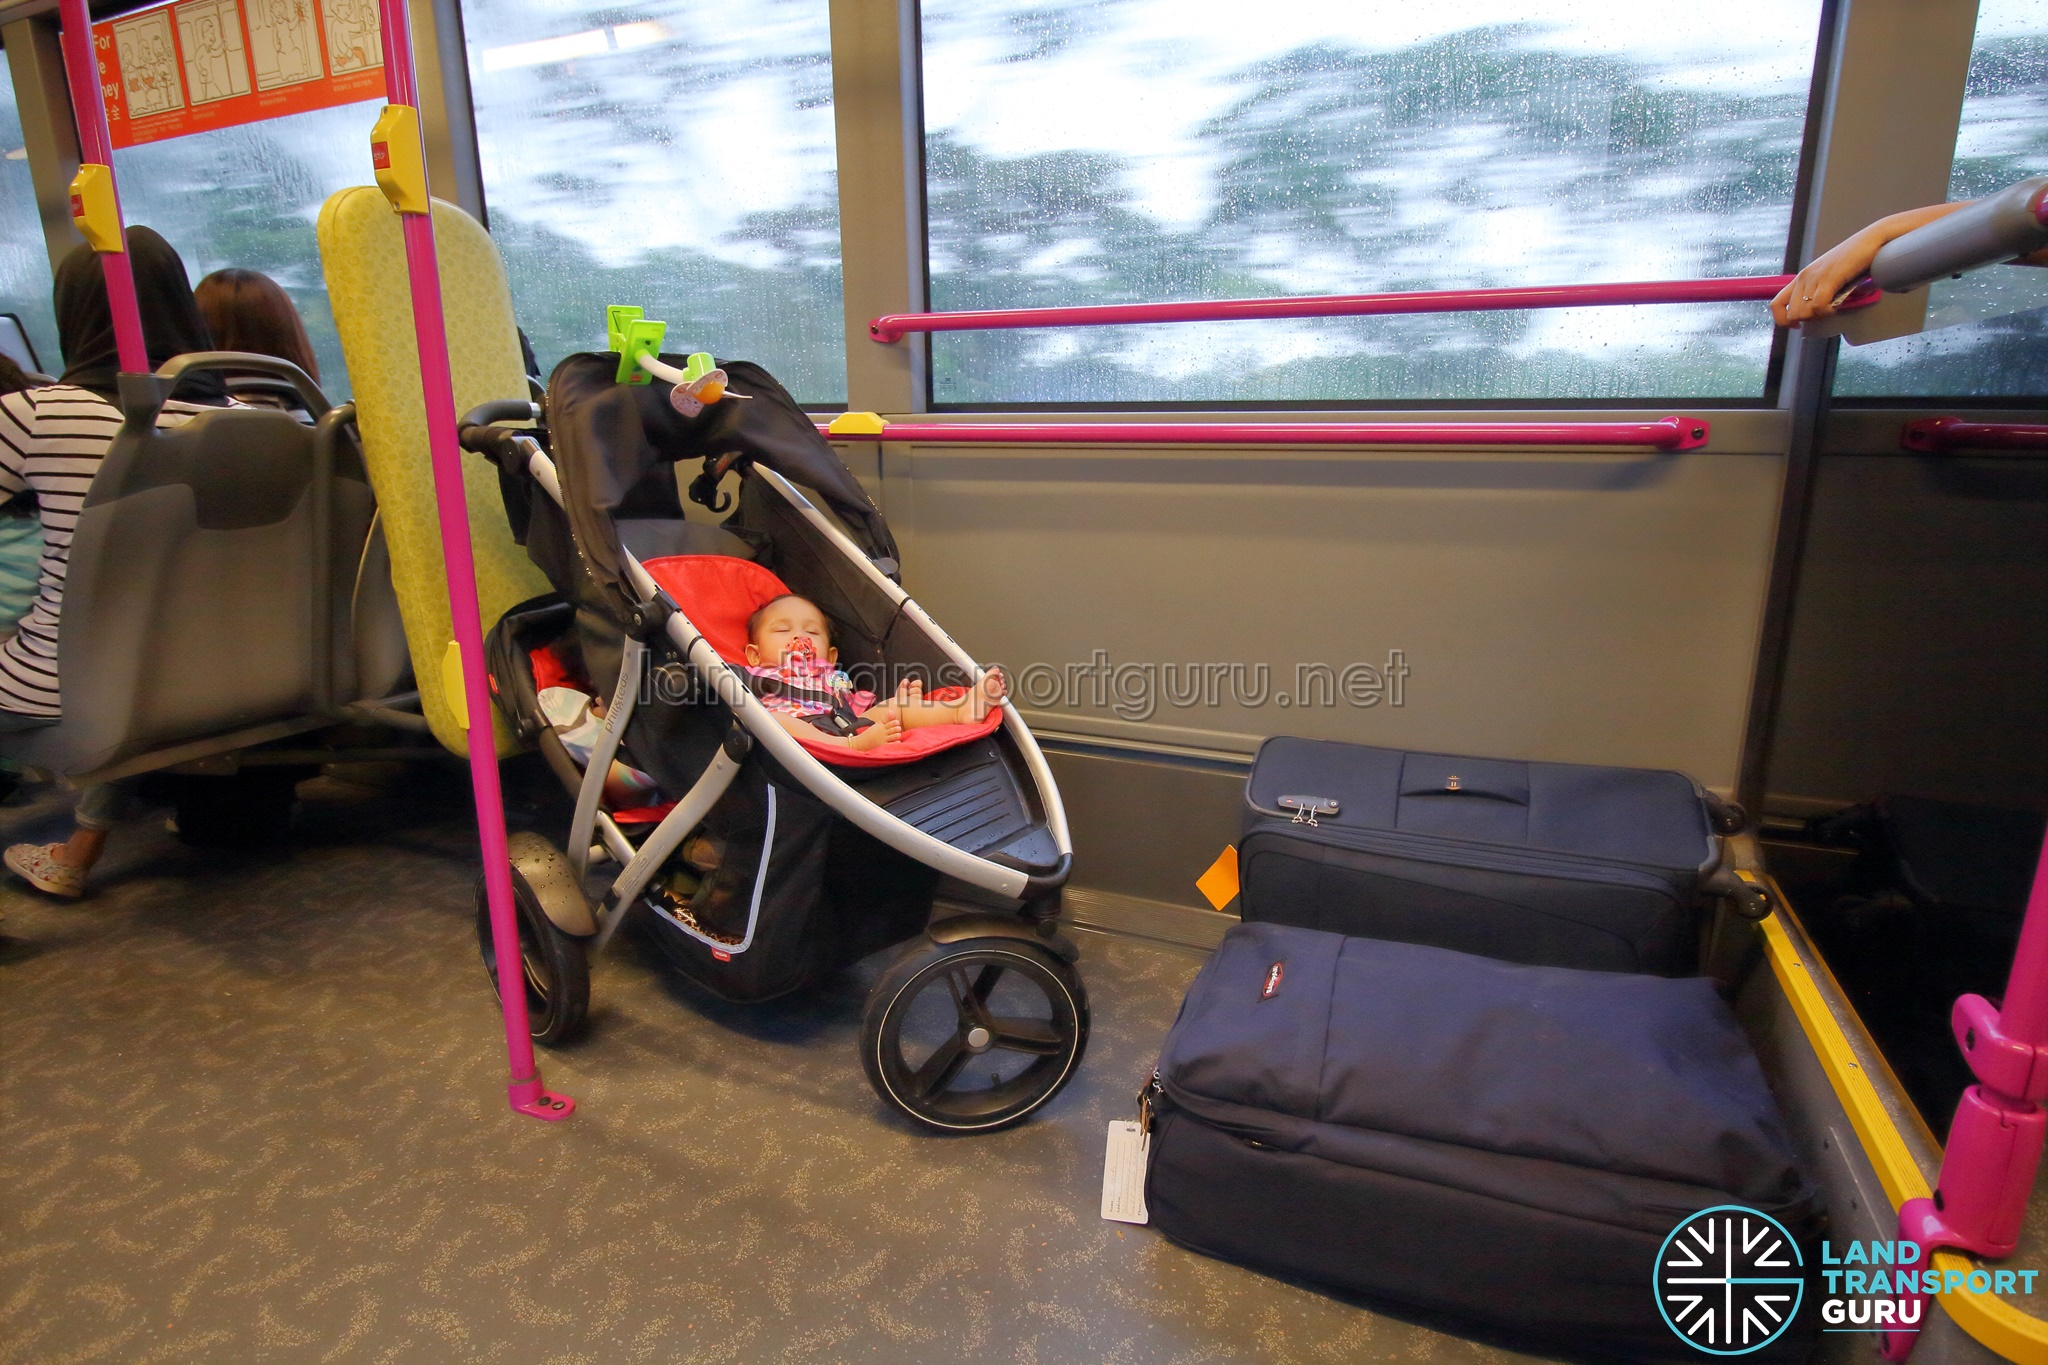 Open prams are allowed on public buses